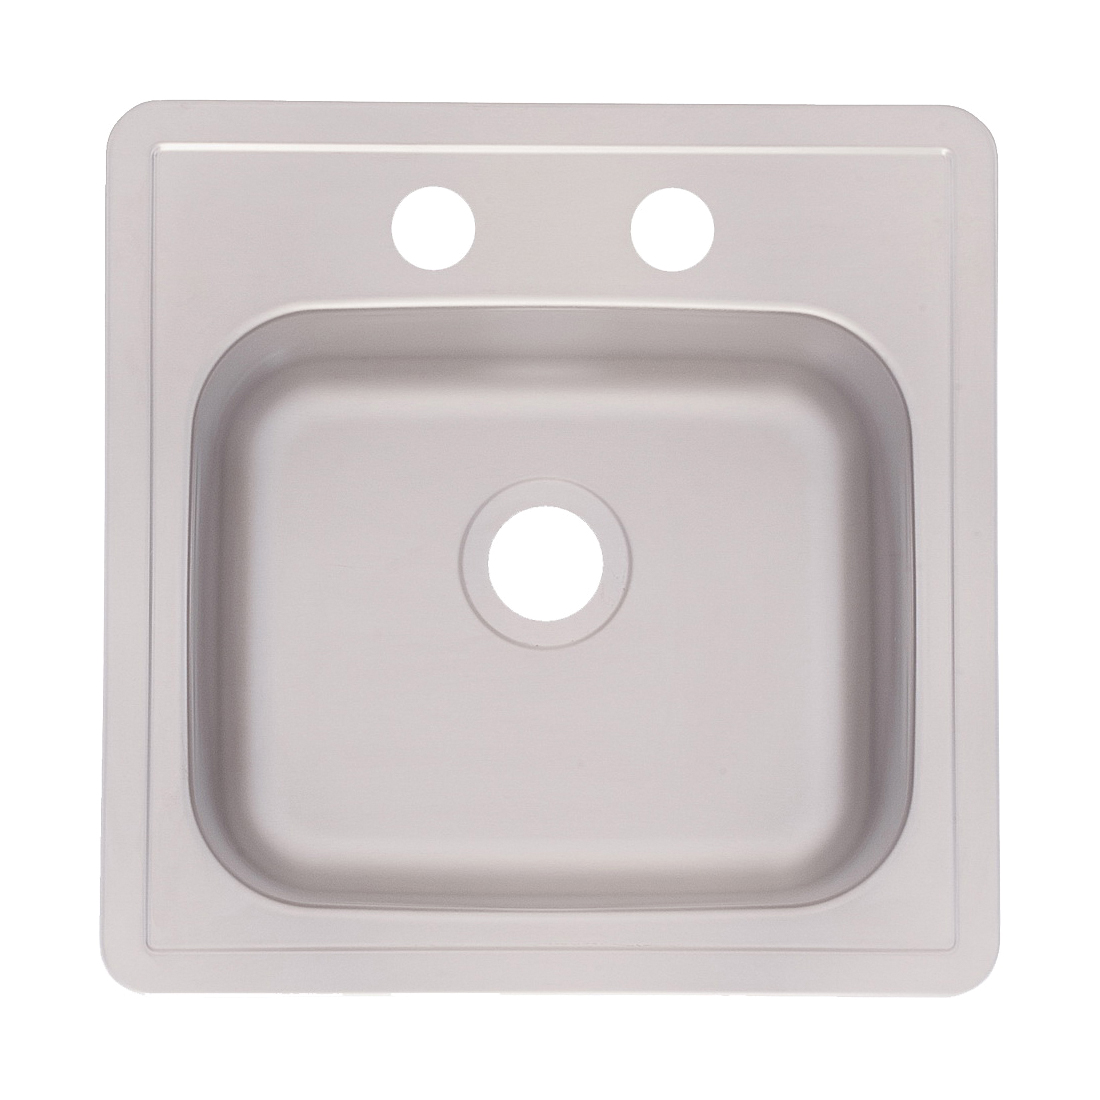 Picture of KINDRED FBS602NB Bar/Utility Sink, 2-Hole, 15 in L x 15 in W x 6 in D Dimensions, Stainless Steel, Silk, 1-Bowl